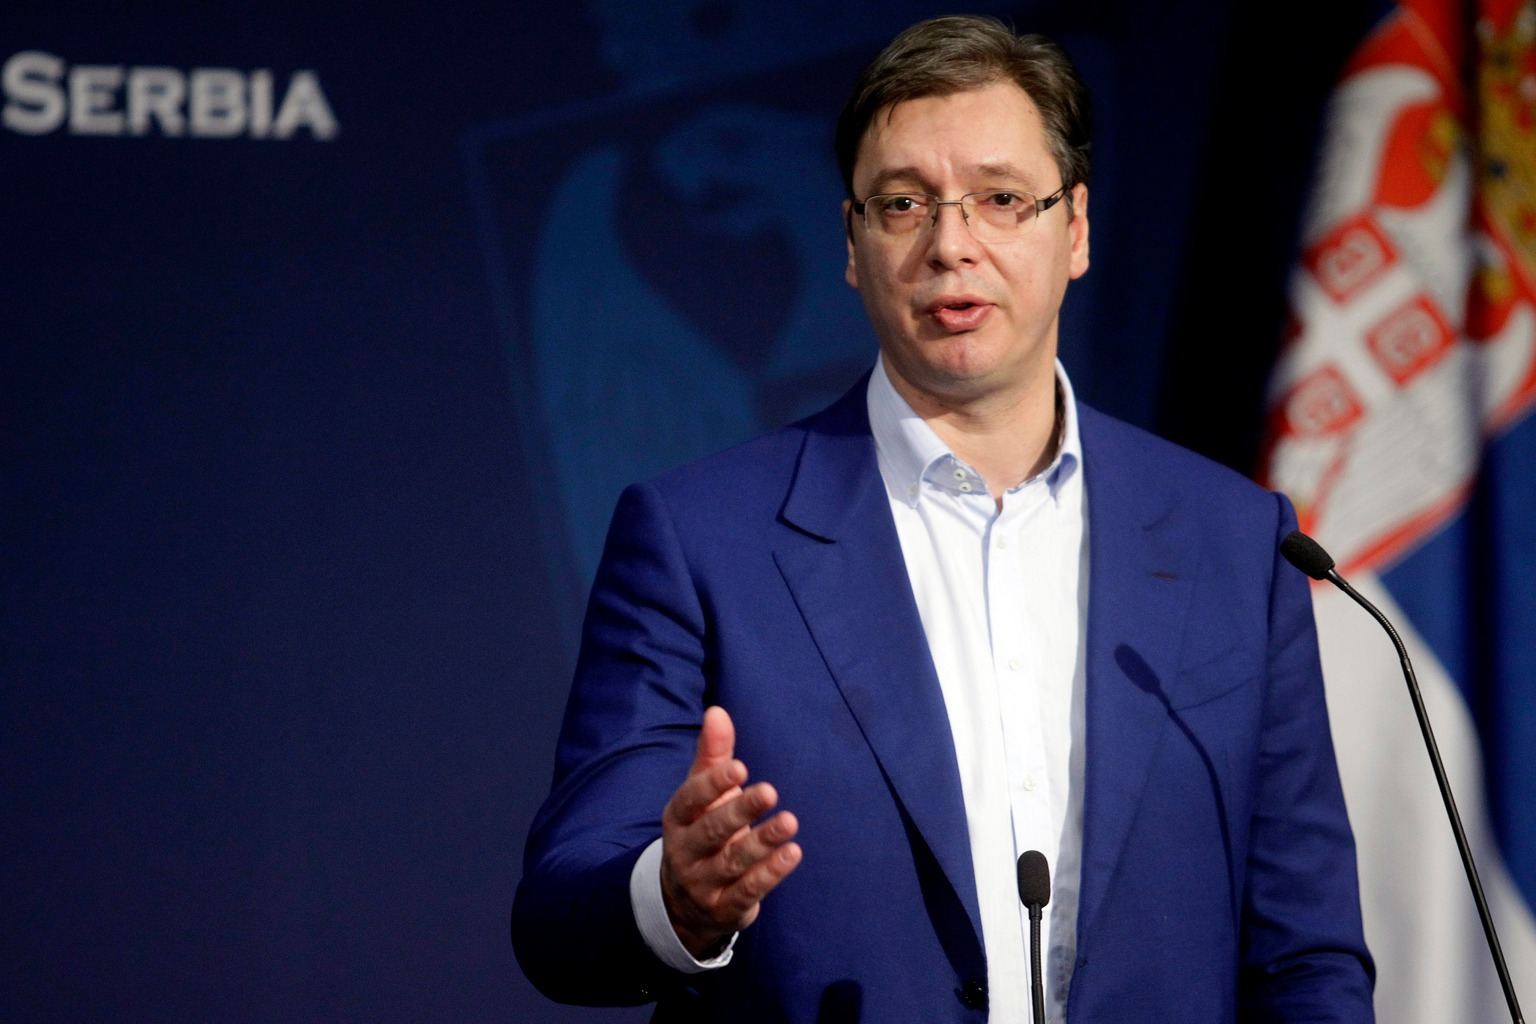 epa05609803 Serbian Prime minister Aleksandar Vucic addresses the media in Belgrade, Serbia, 30 October 2016. On 29 October 2016 Serbian Interior minister Nebojsa Stevanovic said that the security of the Prime minister Vucic was tightened because of the large quantity of weapons was found near a location of his family home near Belgrade.  EPA/KOCA SULEJMANOVIC